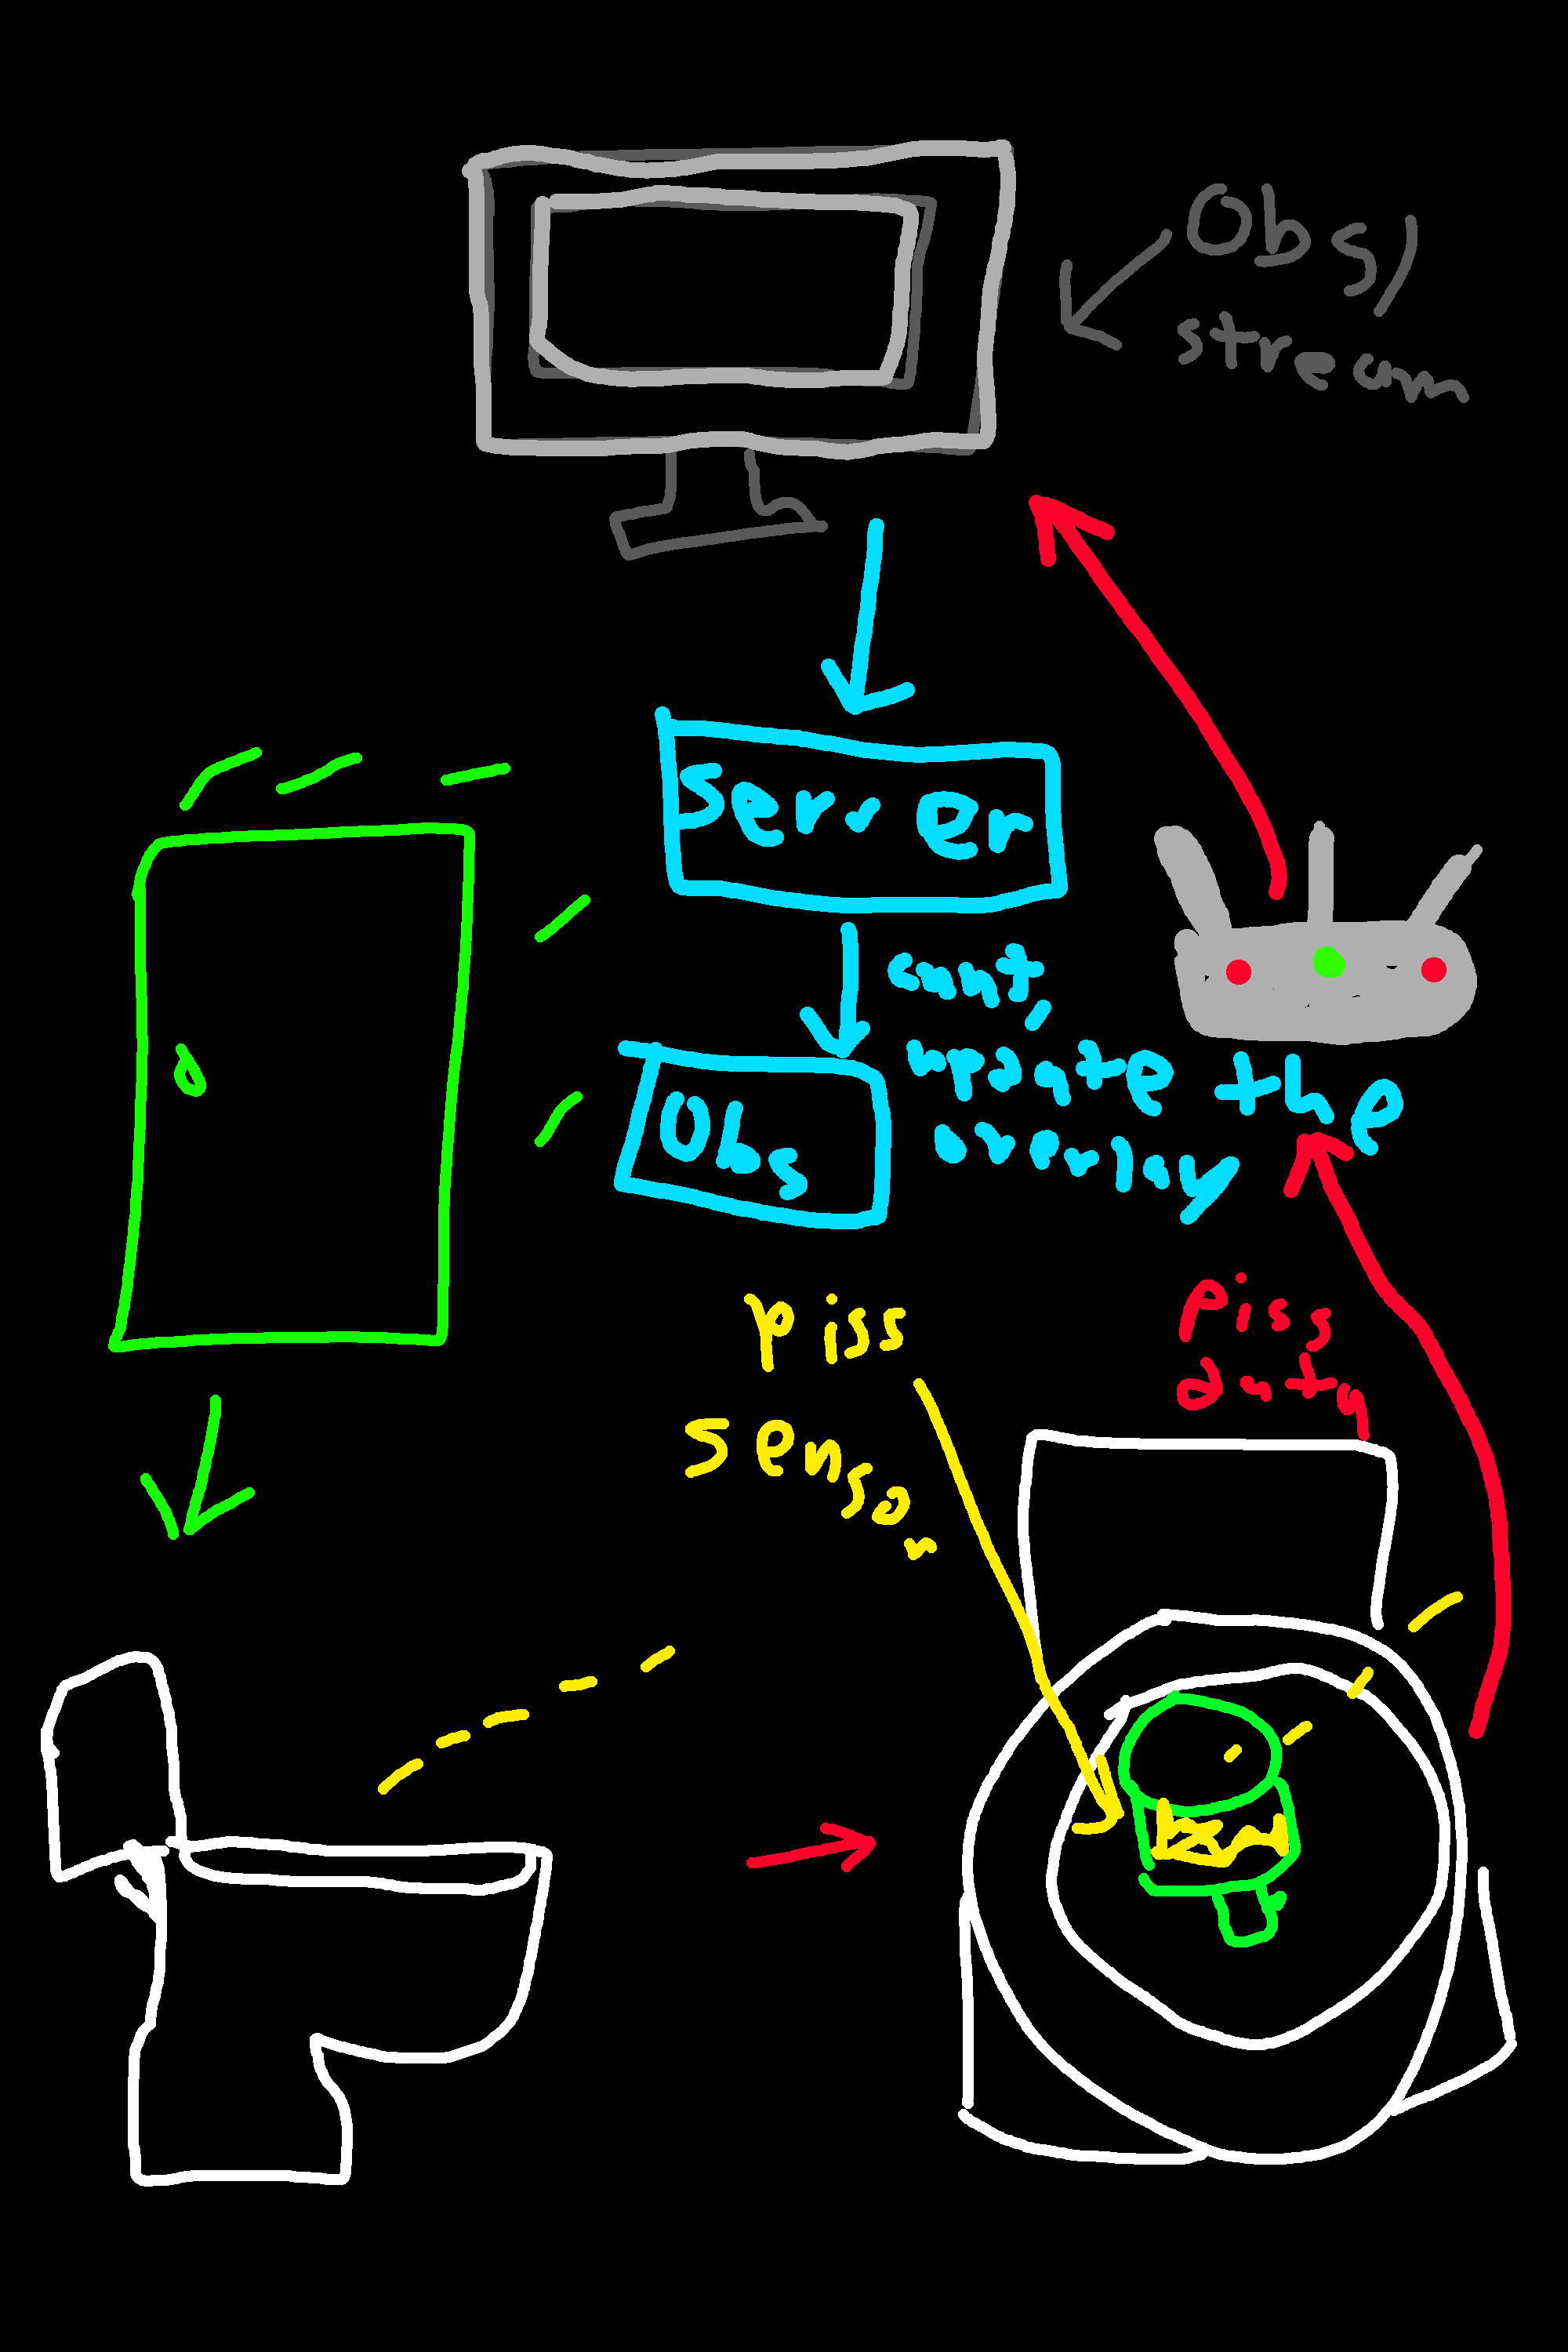 piss up cup diagram poster